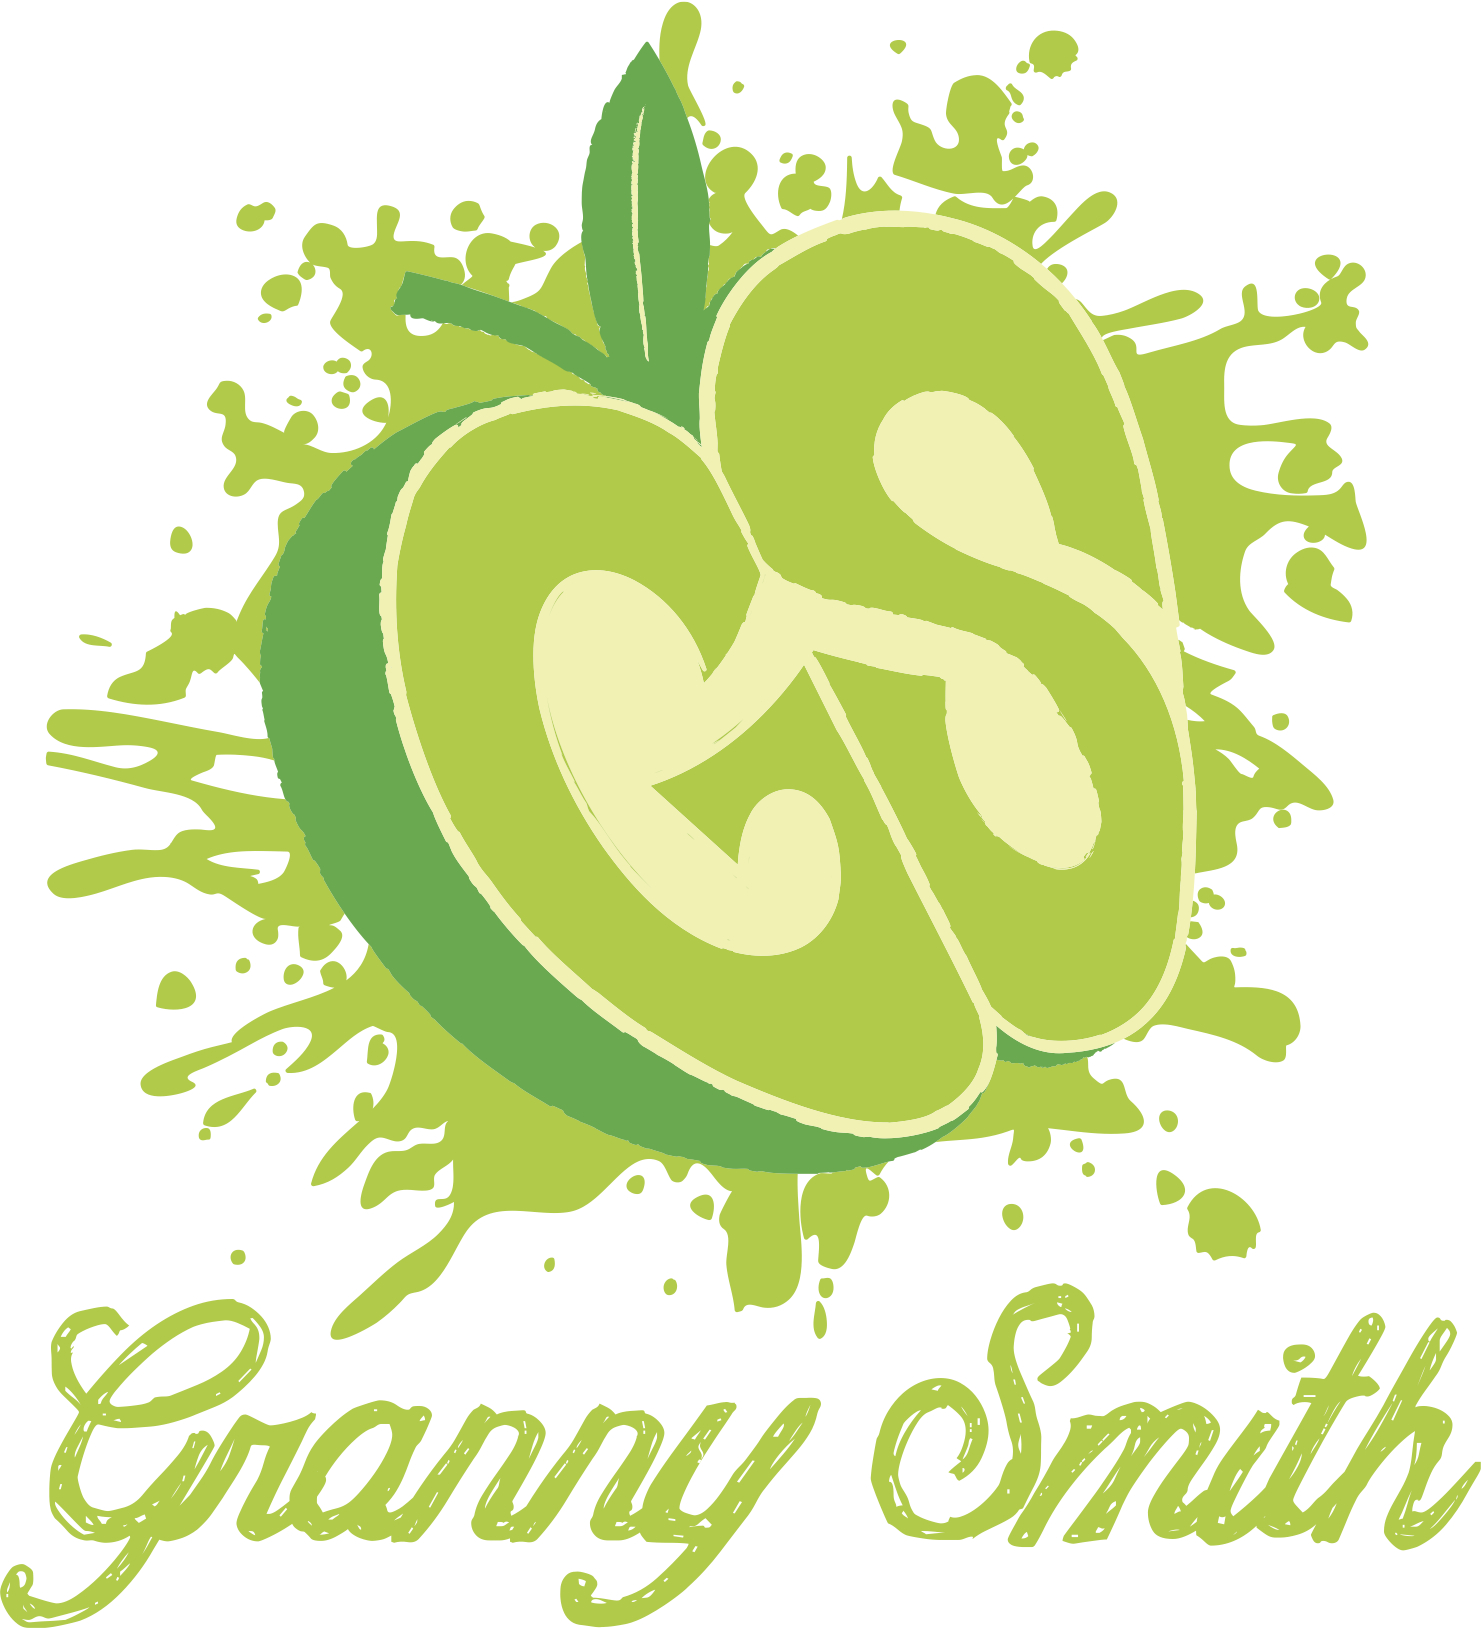 Granny Smith logo.jpg